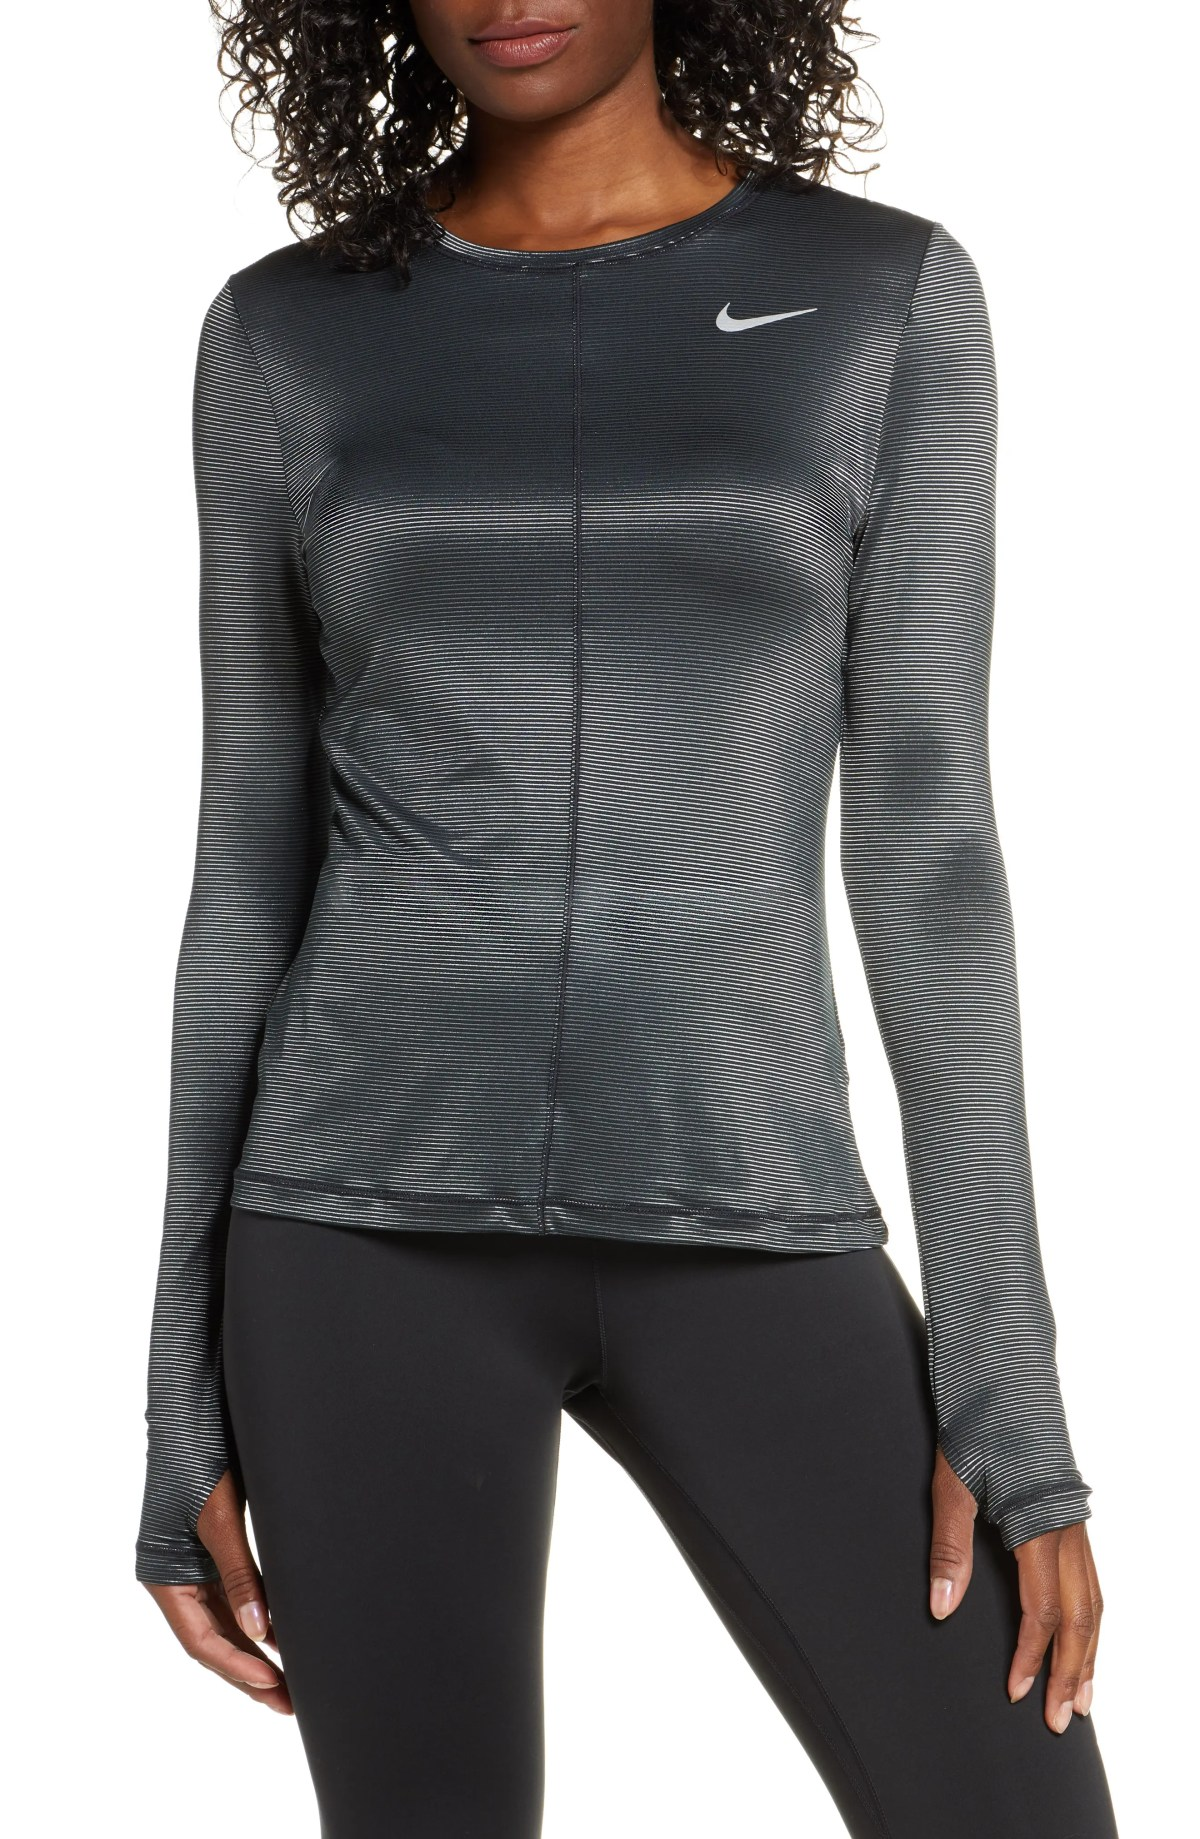 NIKE Dry Miler Shine Long Sleeve Shirt, Main, color, BLK/ MET SILV/ REFLECT SILV